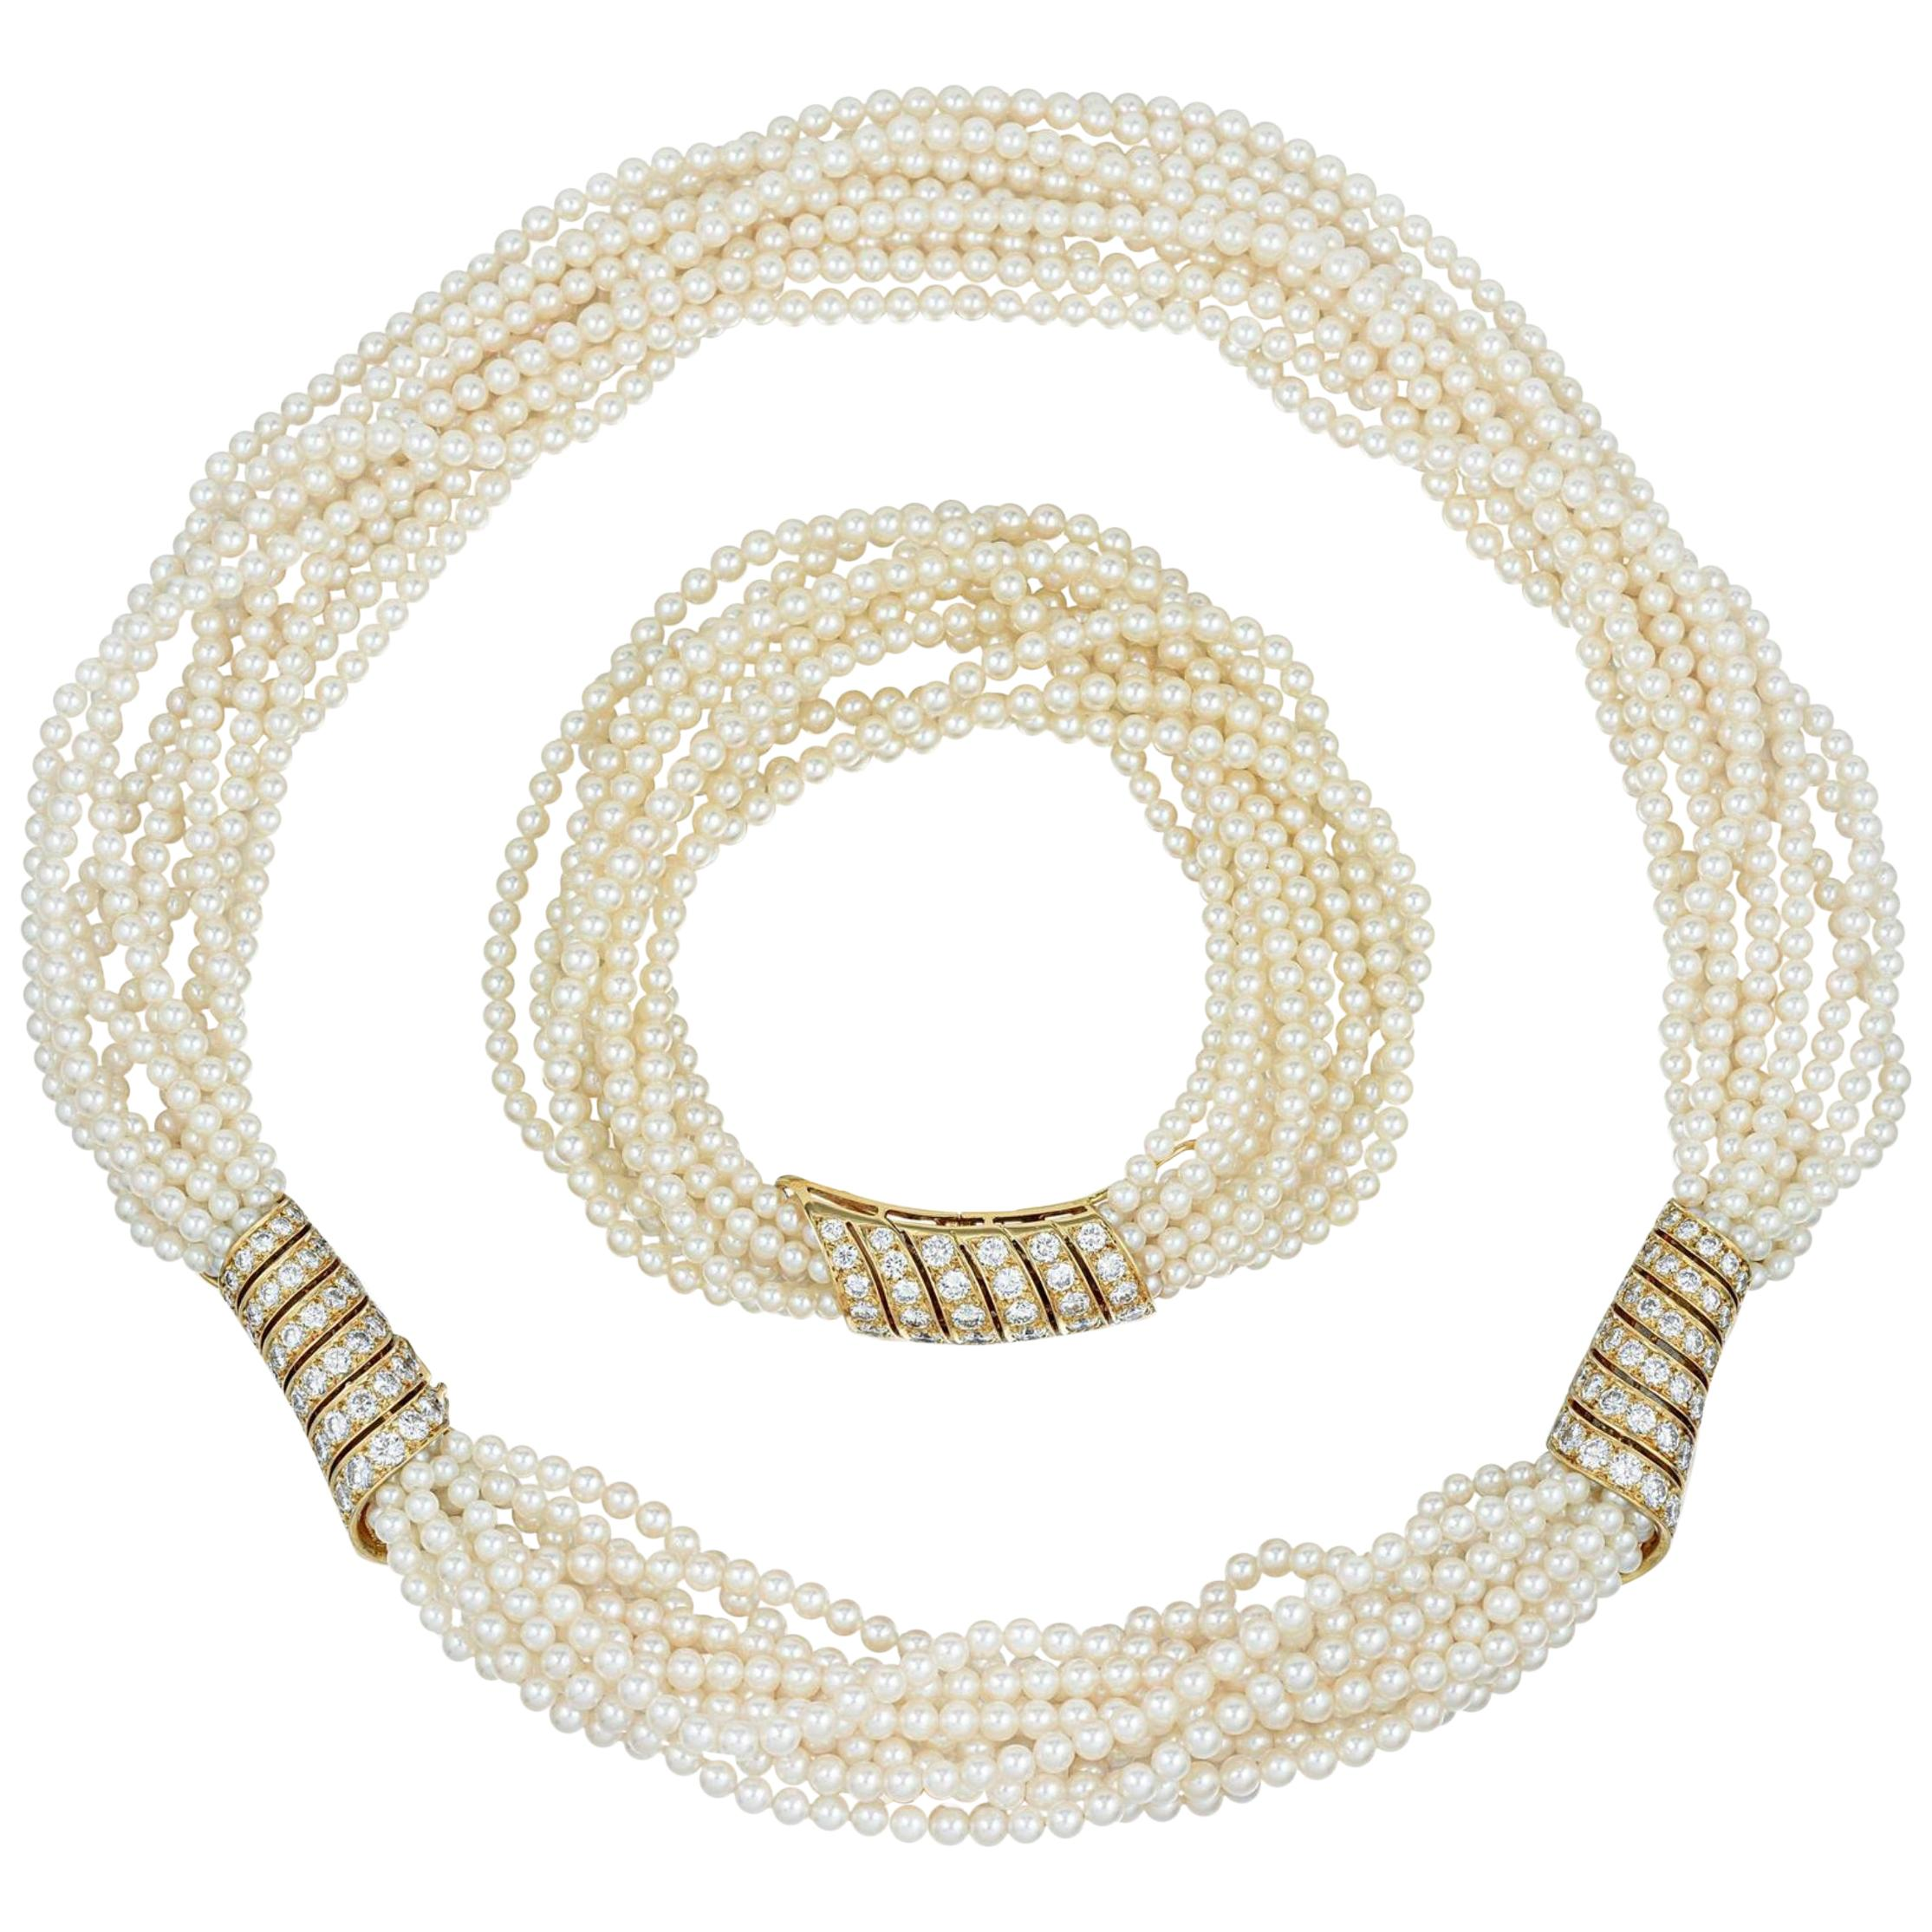 Cartier Fine Cultured Pearl and Diamond Necklace and Bracelet Set